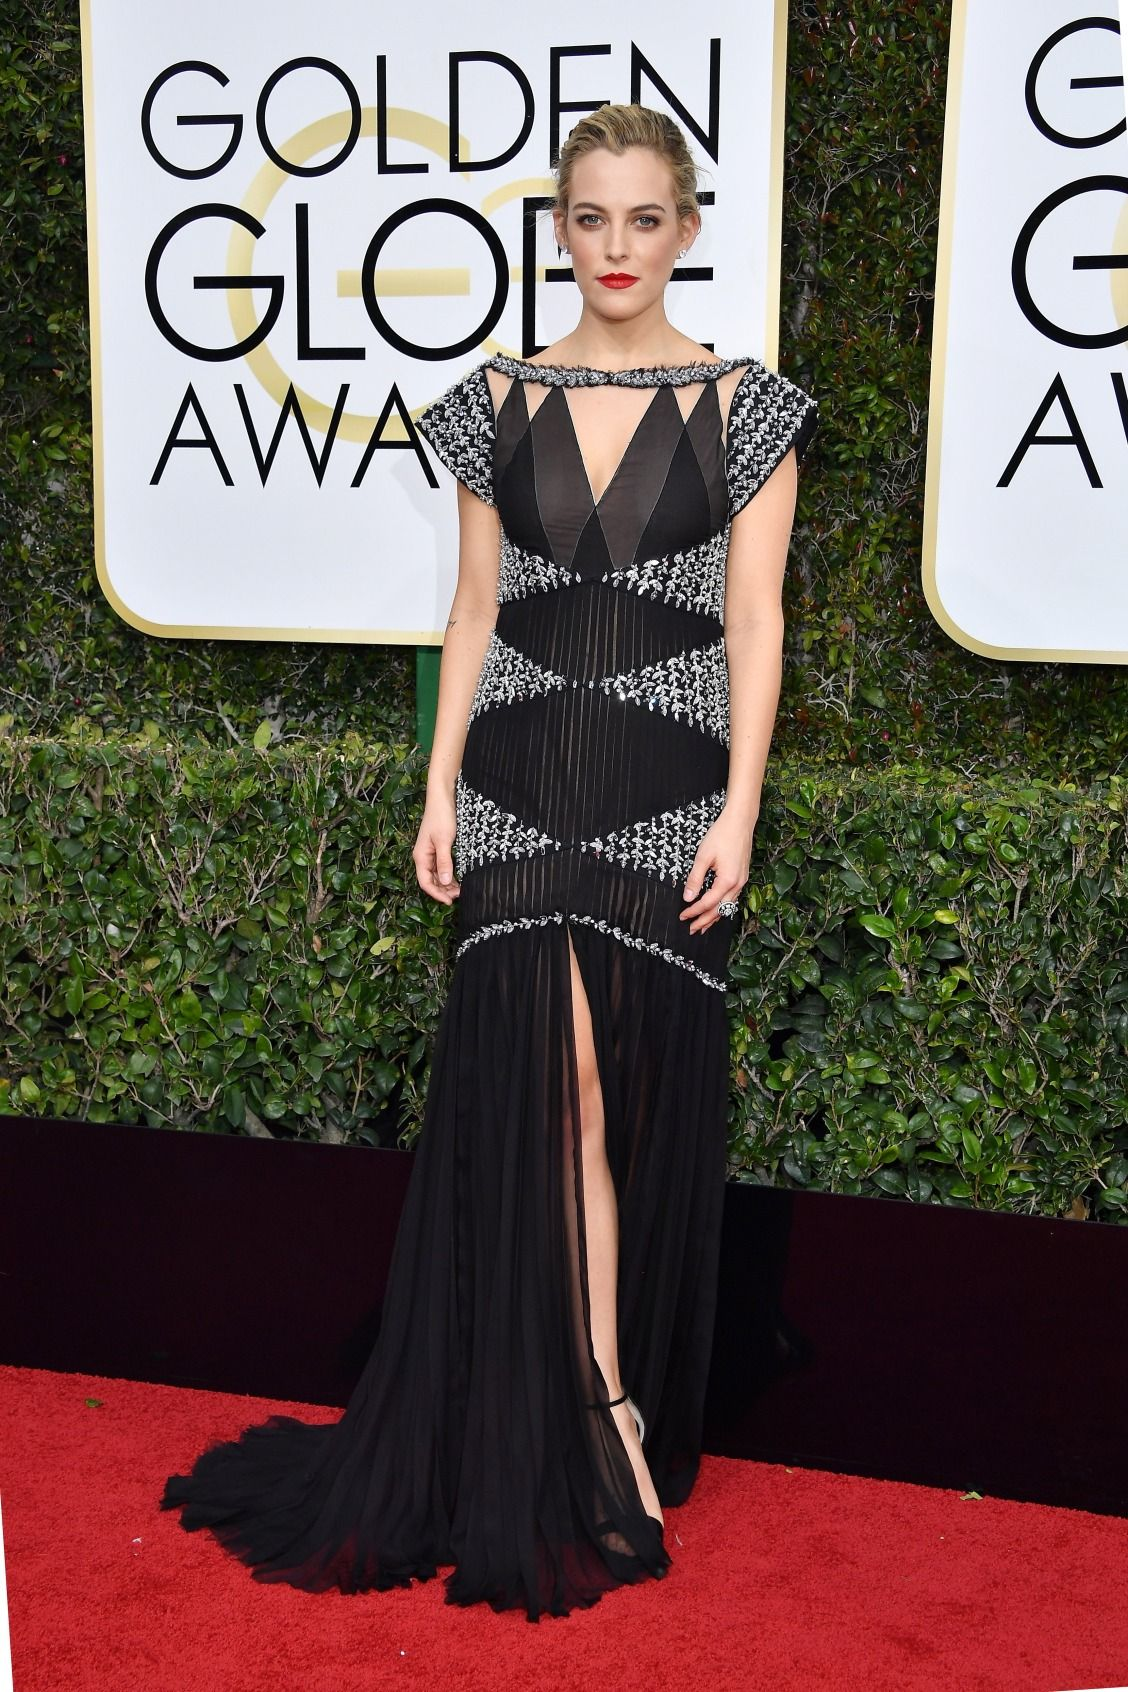 Golden Globes 2017 Fashion Live From The Red Carpet Golden Globes Red Carpet Celebrity Red Carpet Nice Dresses